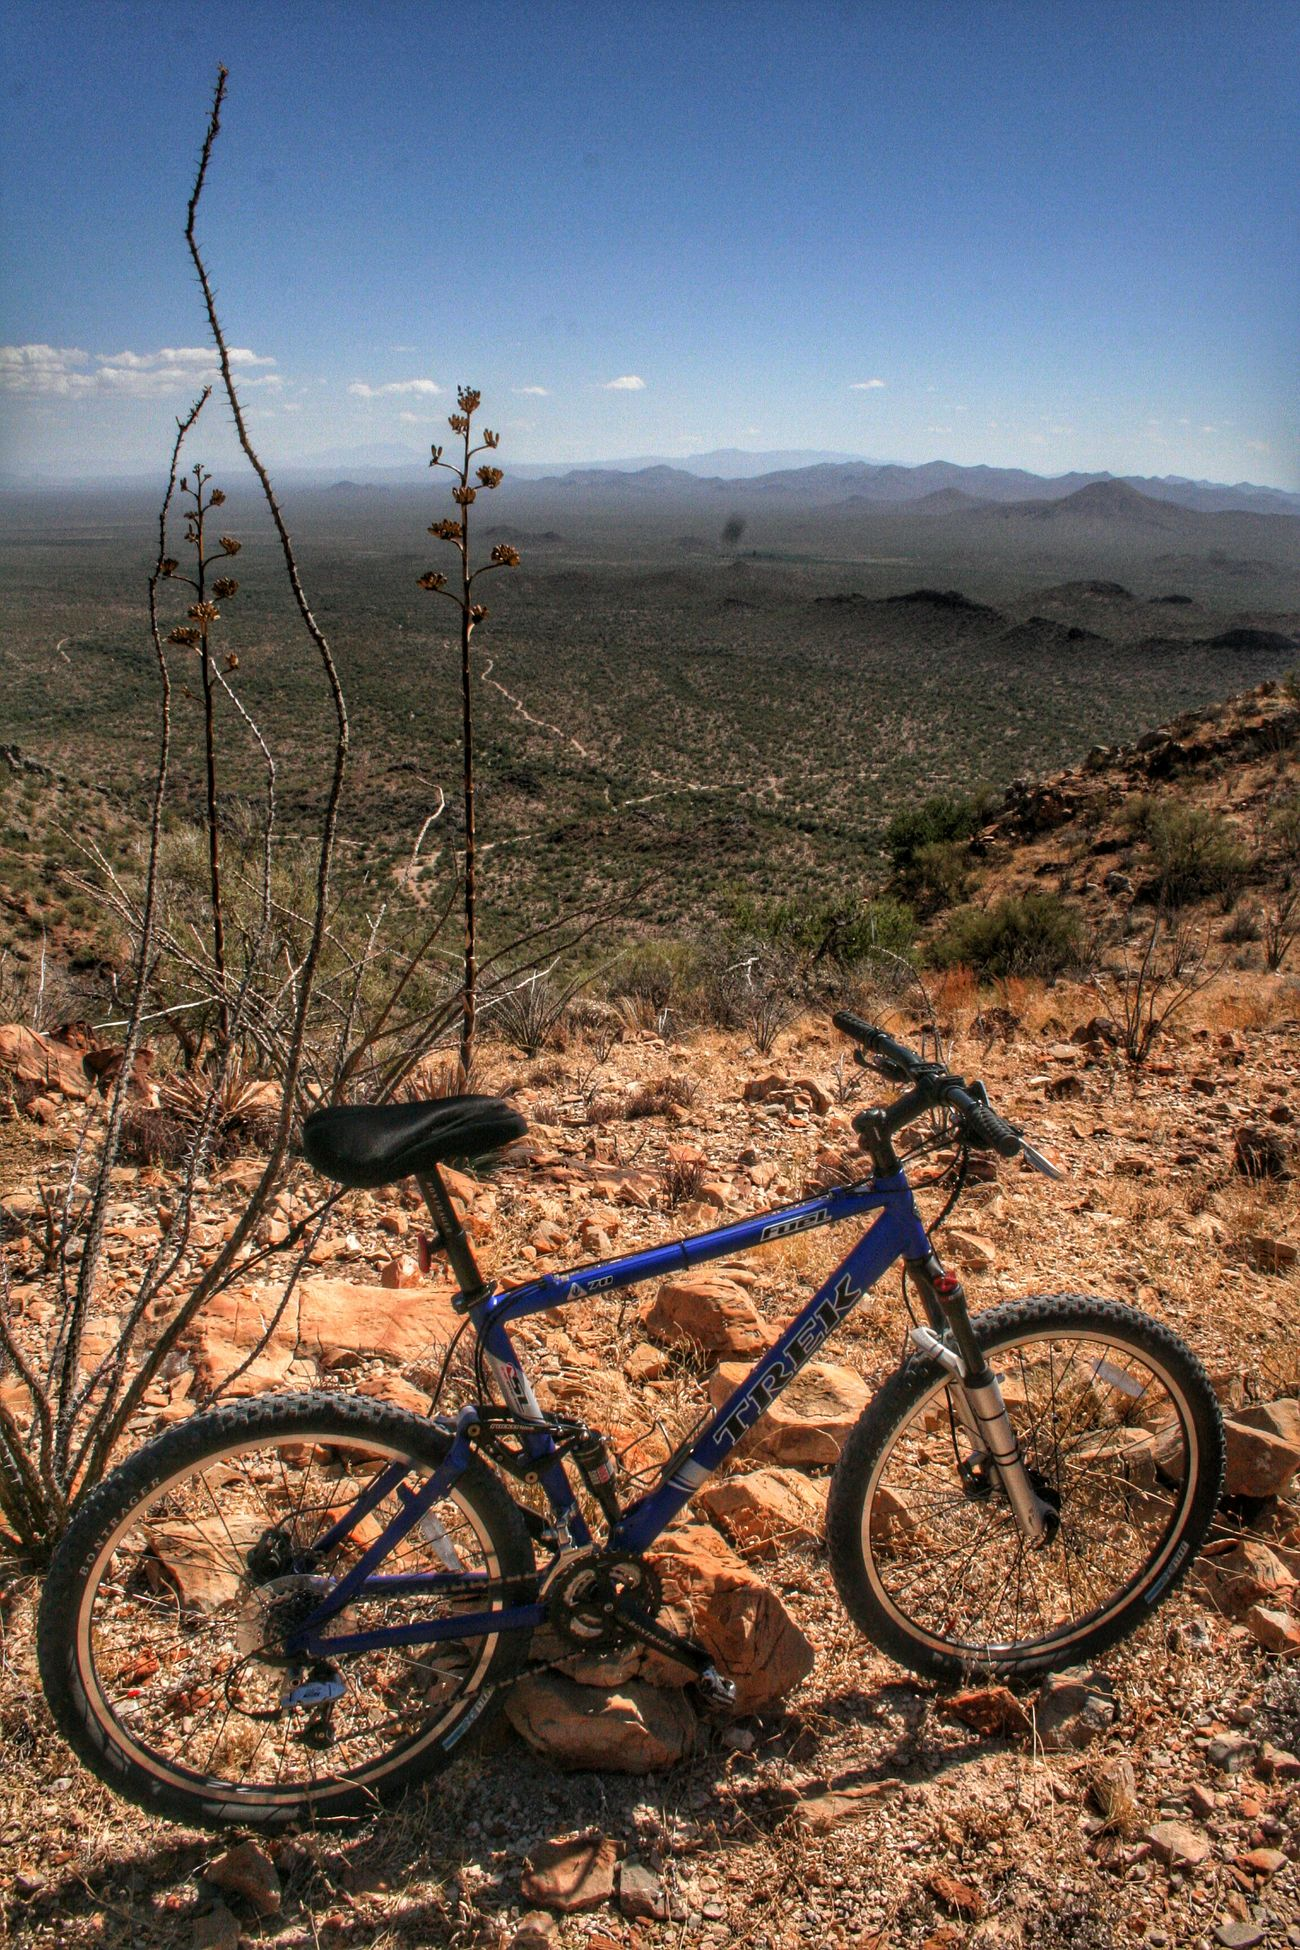 Mountain Biking Mountainbiking Waterman Peak, AZ Landscape Arizona Desert MTB Fouquieria Splendens